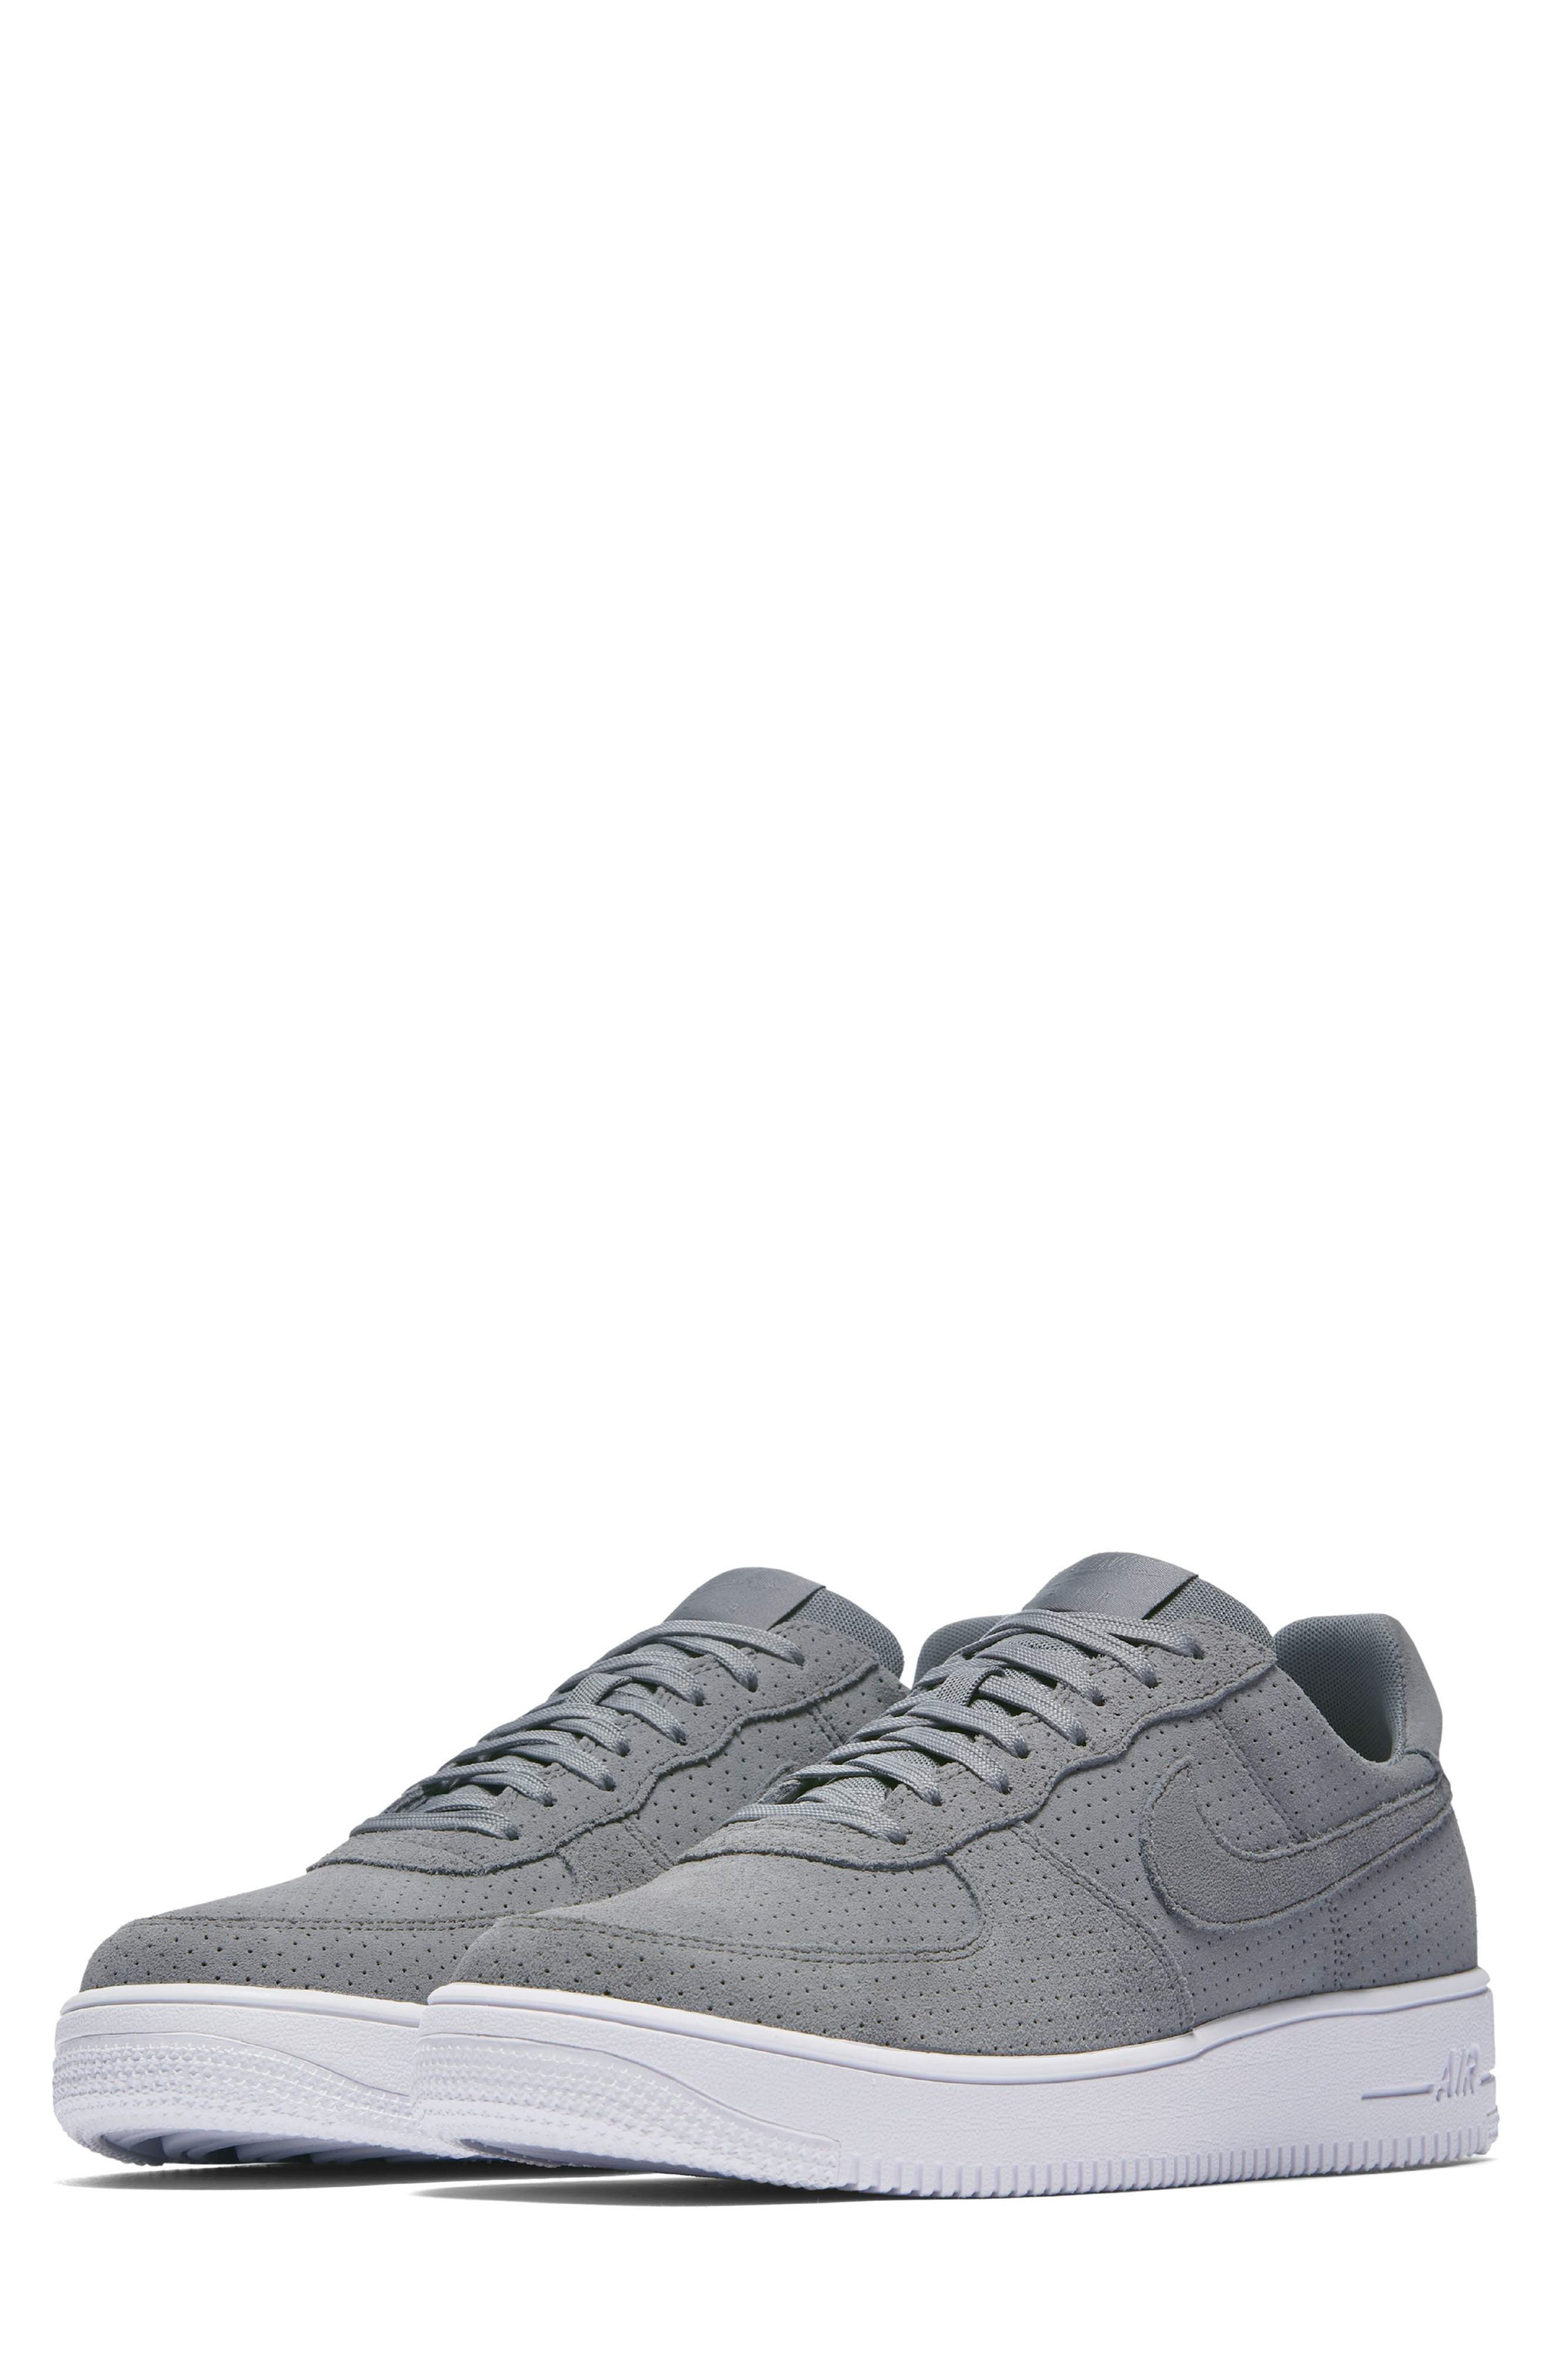 Air Force 1 Ultraforce Sneaker,                             Main thumbnail 1, color,                             Cool Grey/ White